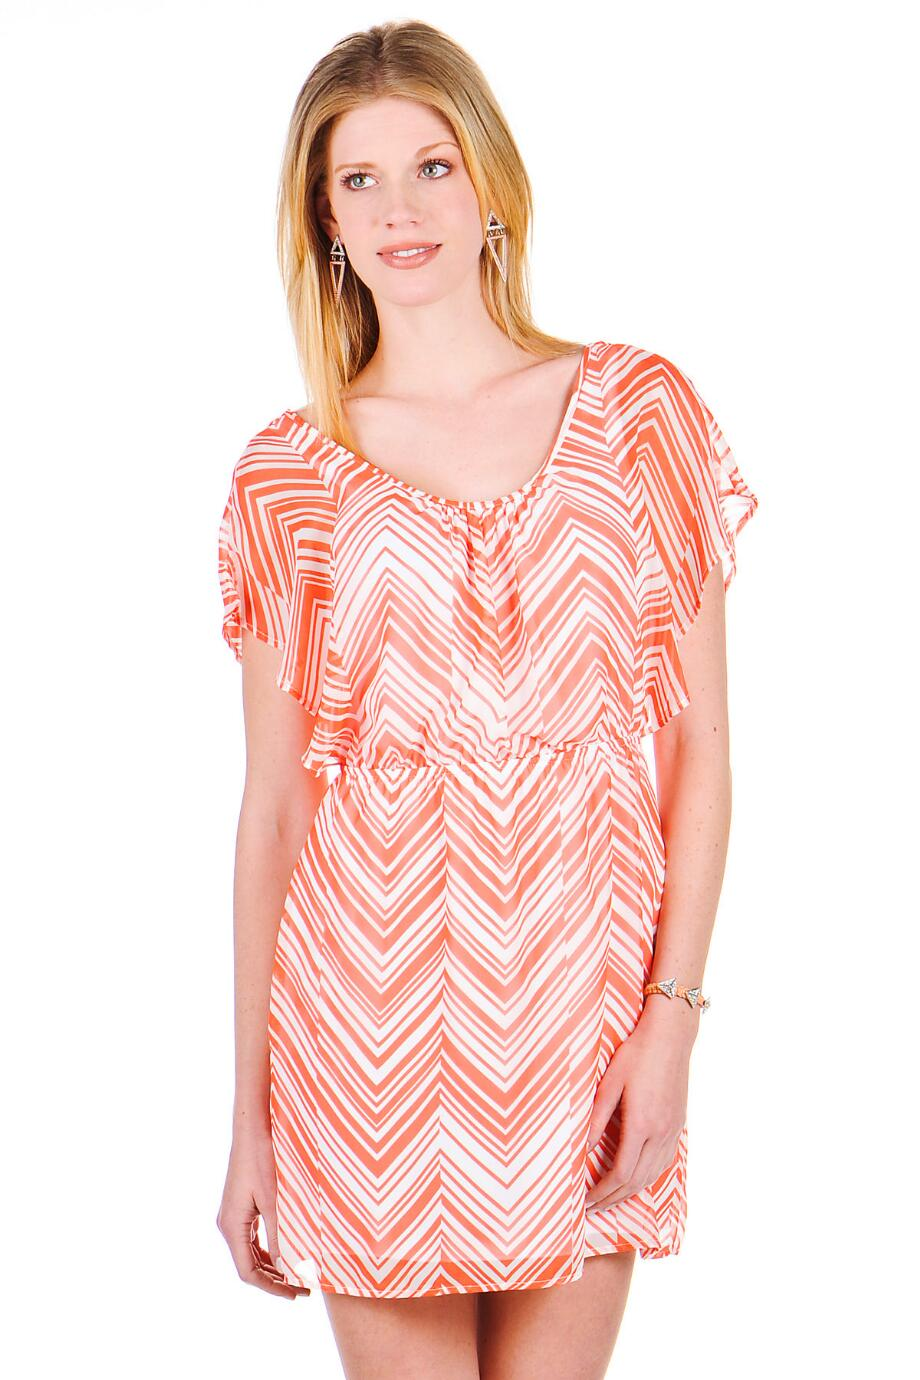 Bermuda Chevron Dress